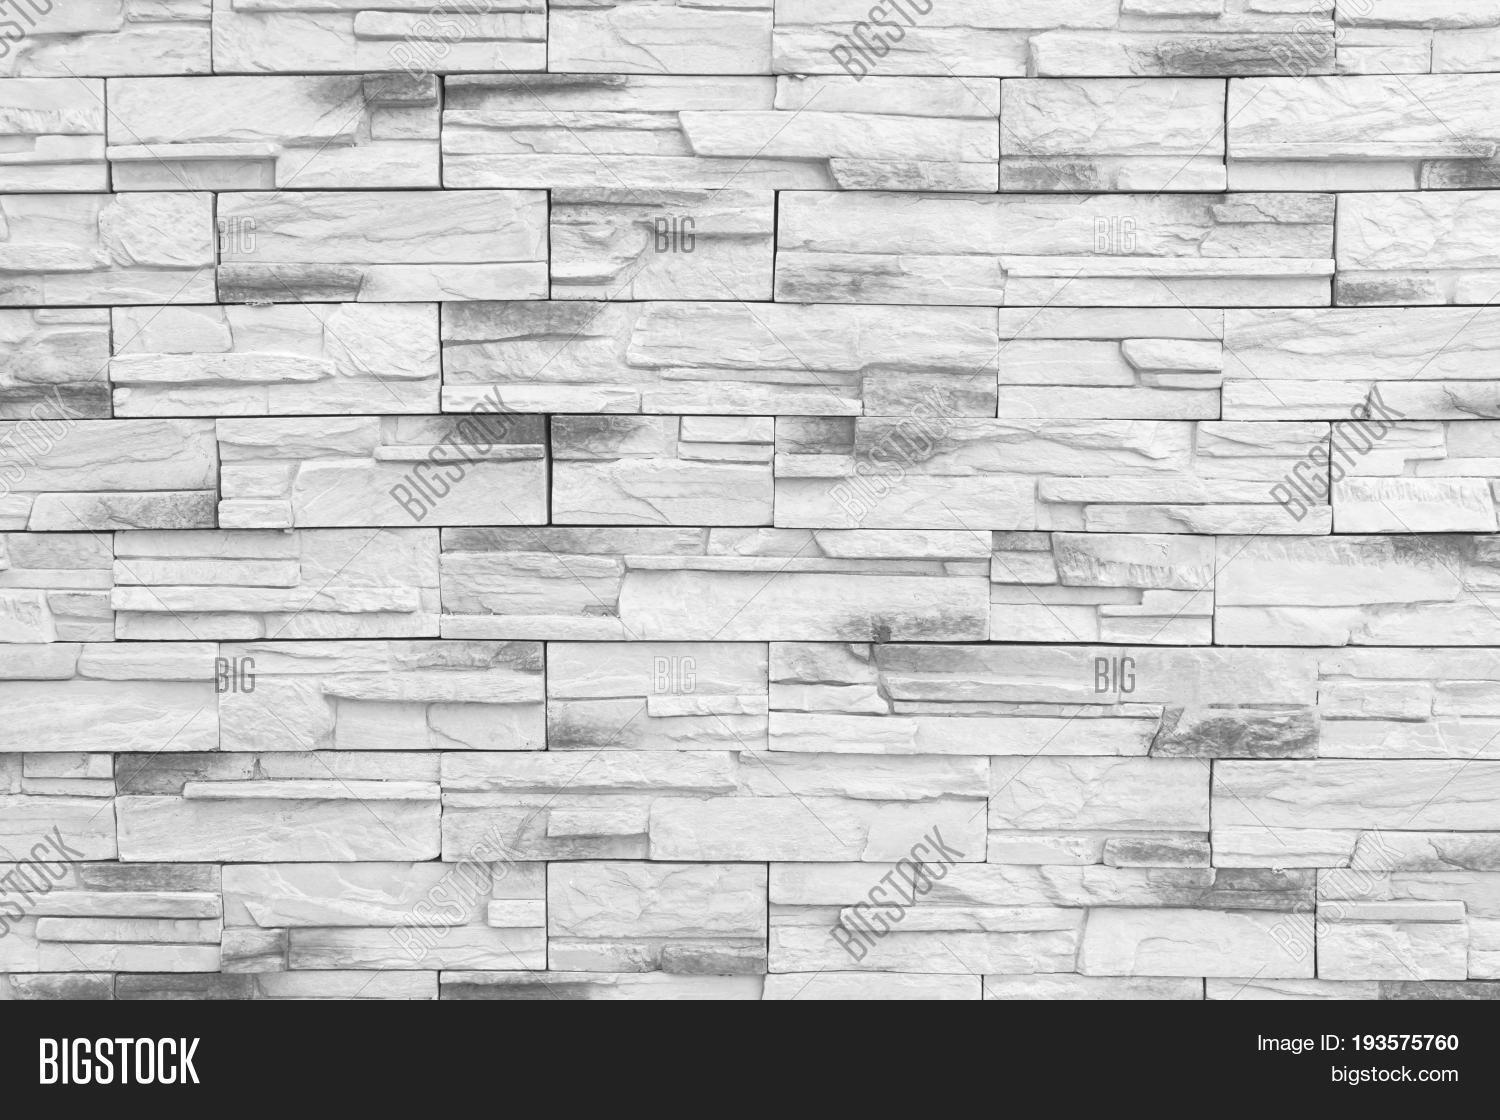 Brick Wall Background Old Gray Bricks Pattern Texture Or